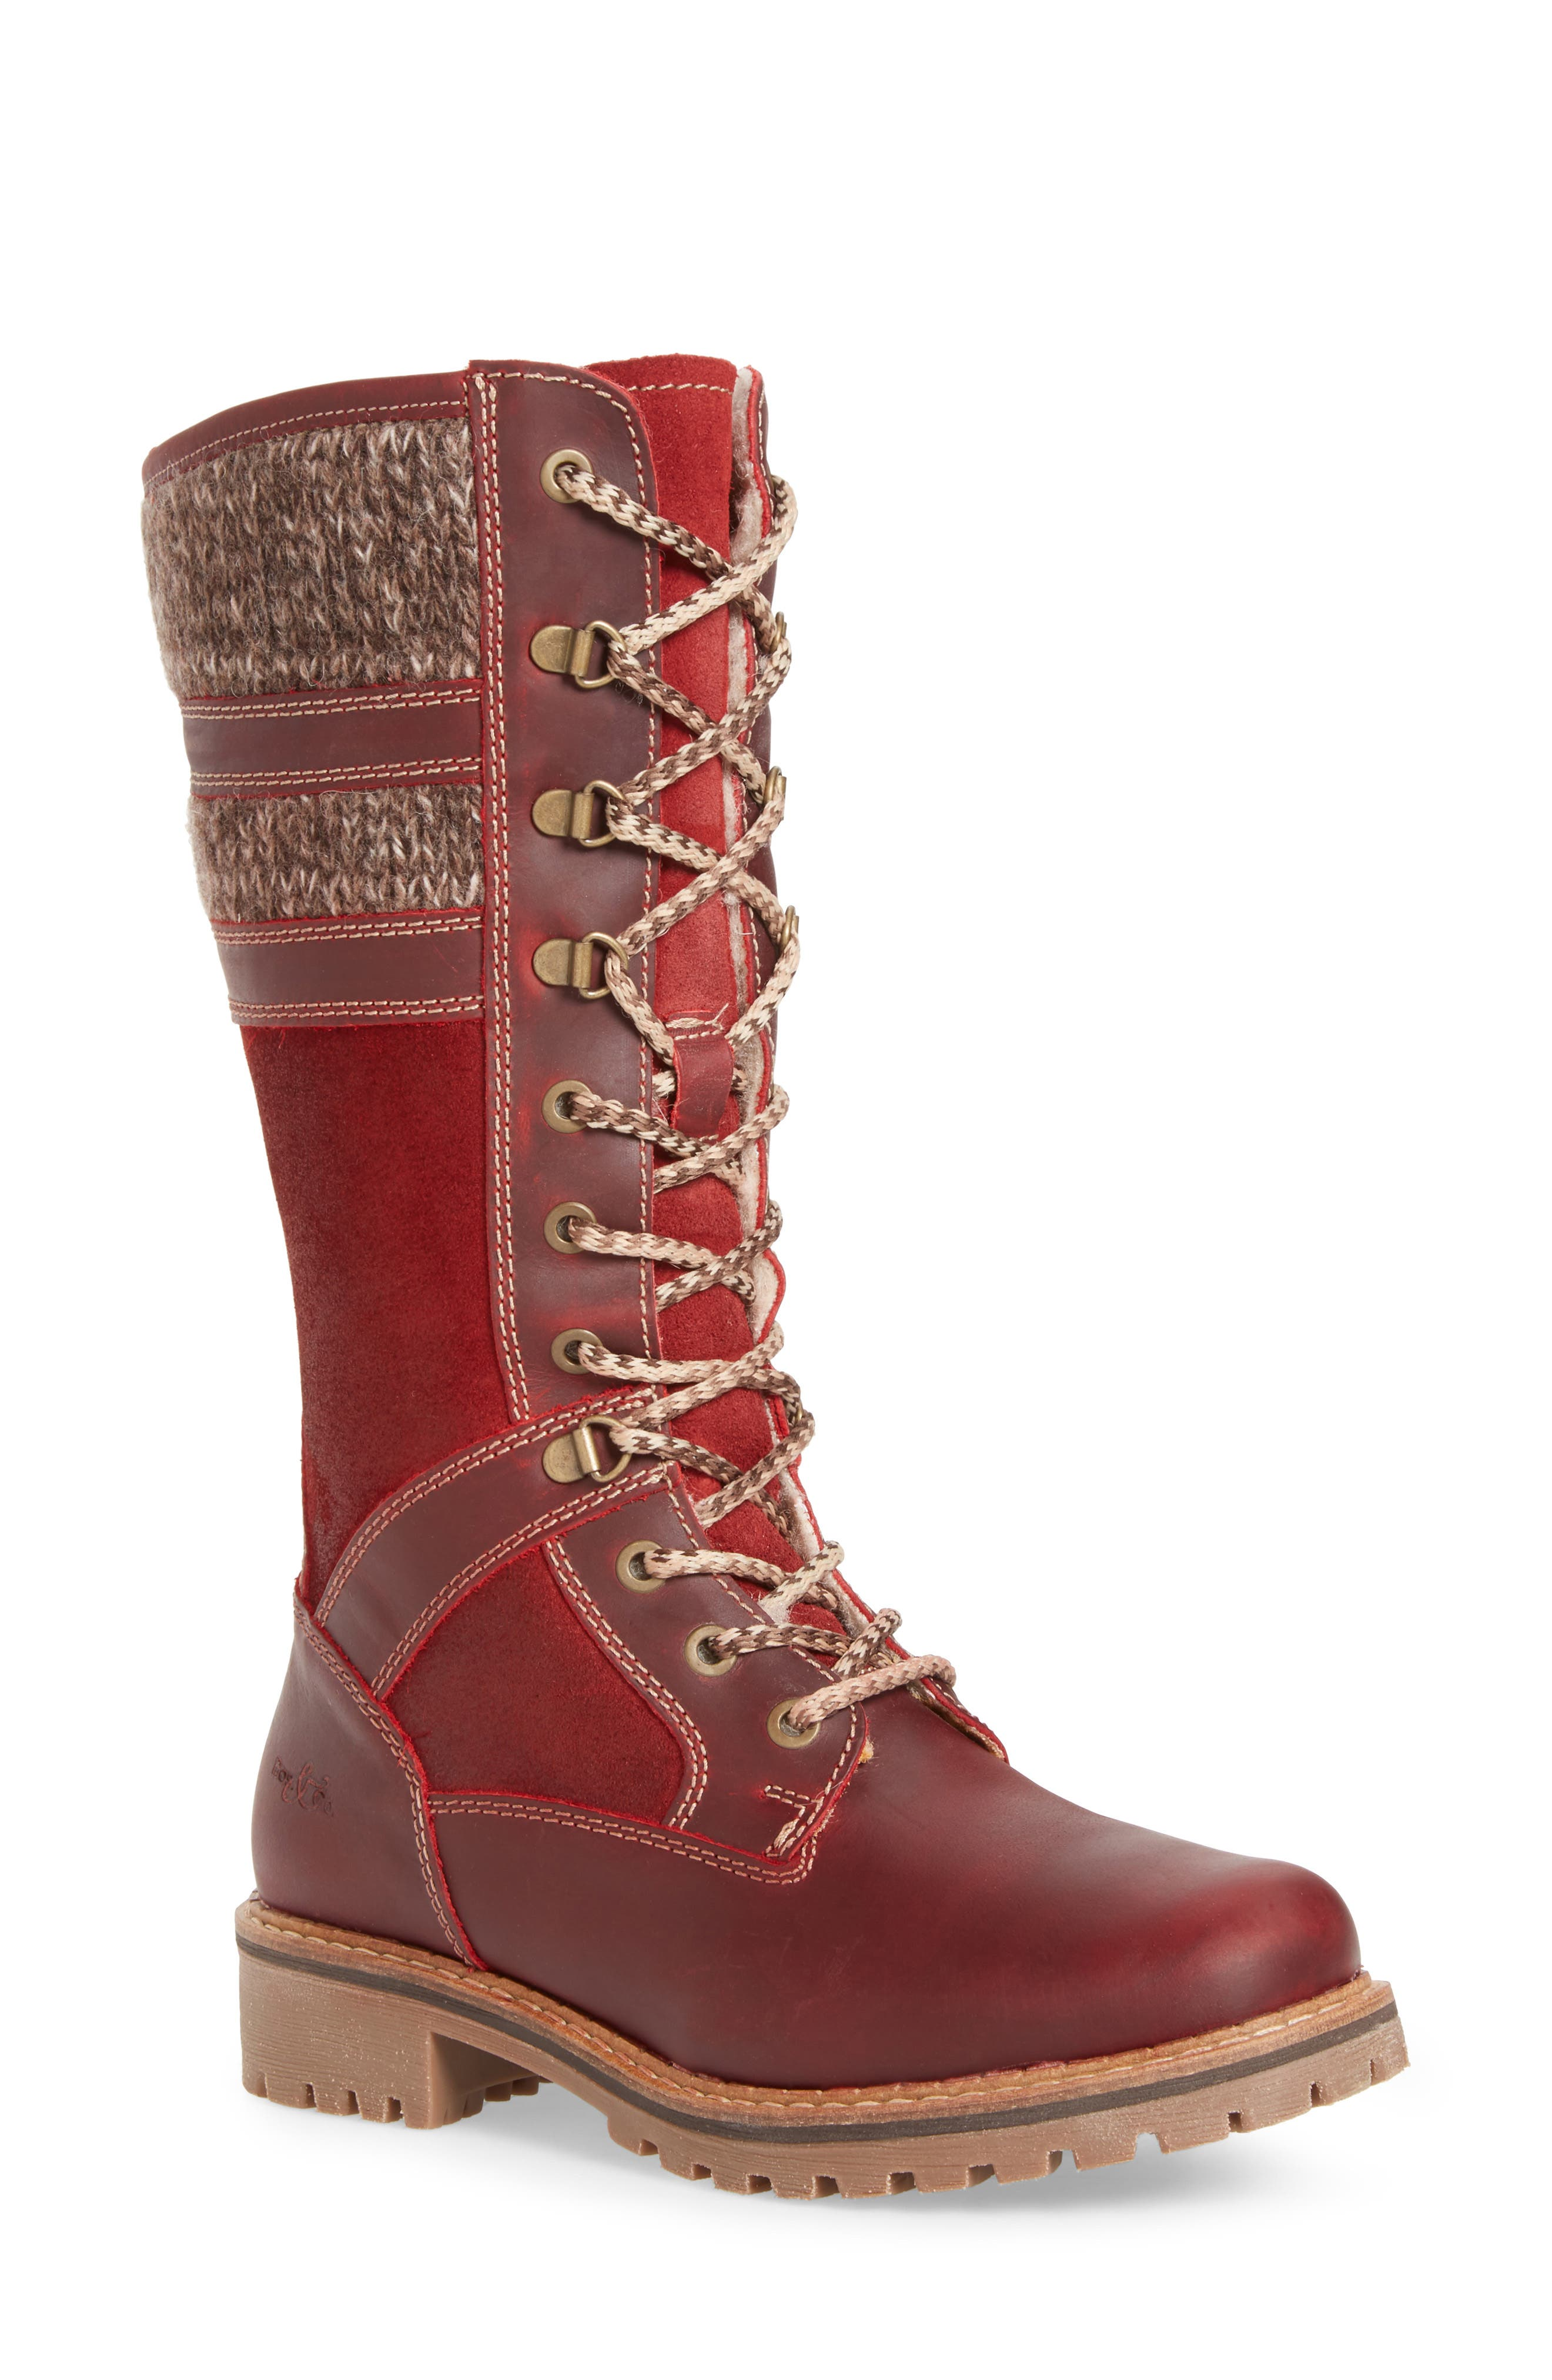 BOS. & CO. Holding Waterproof Boot